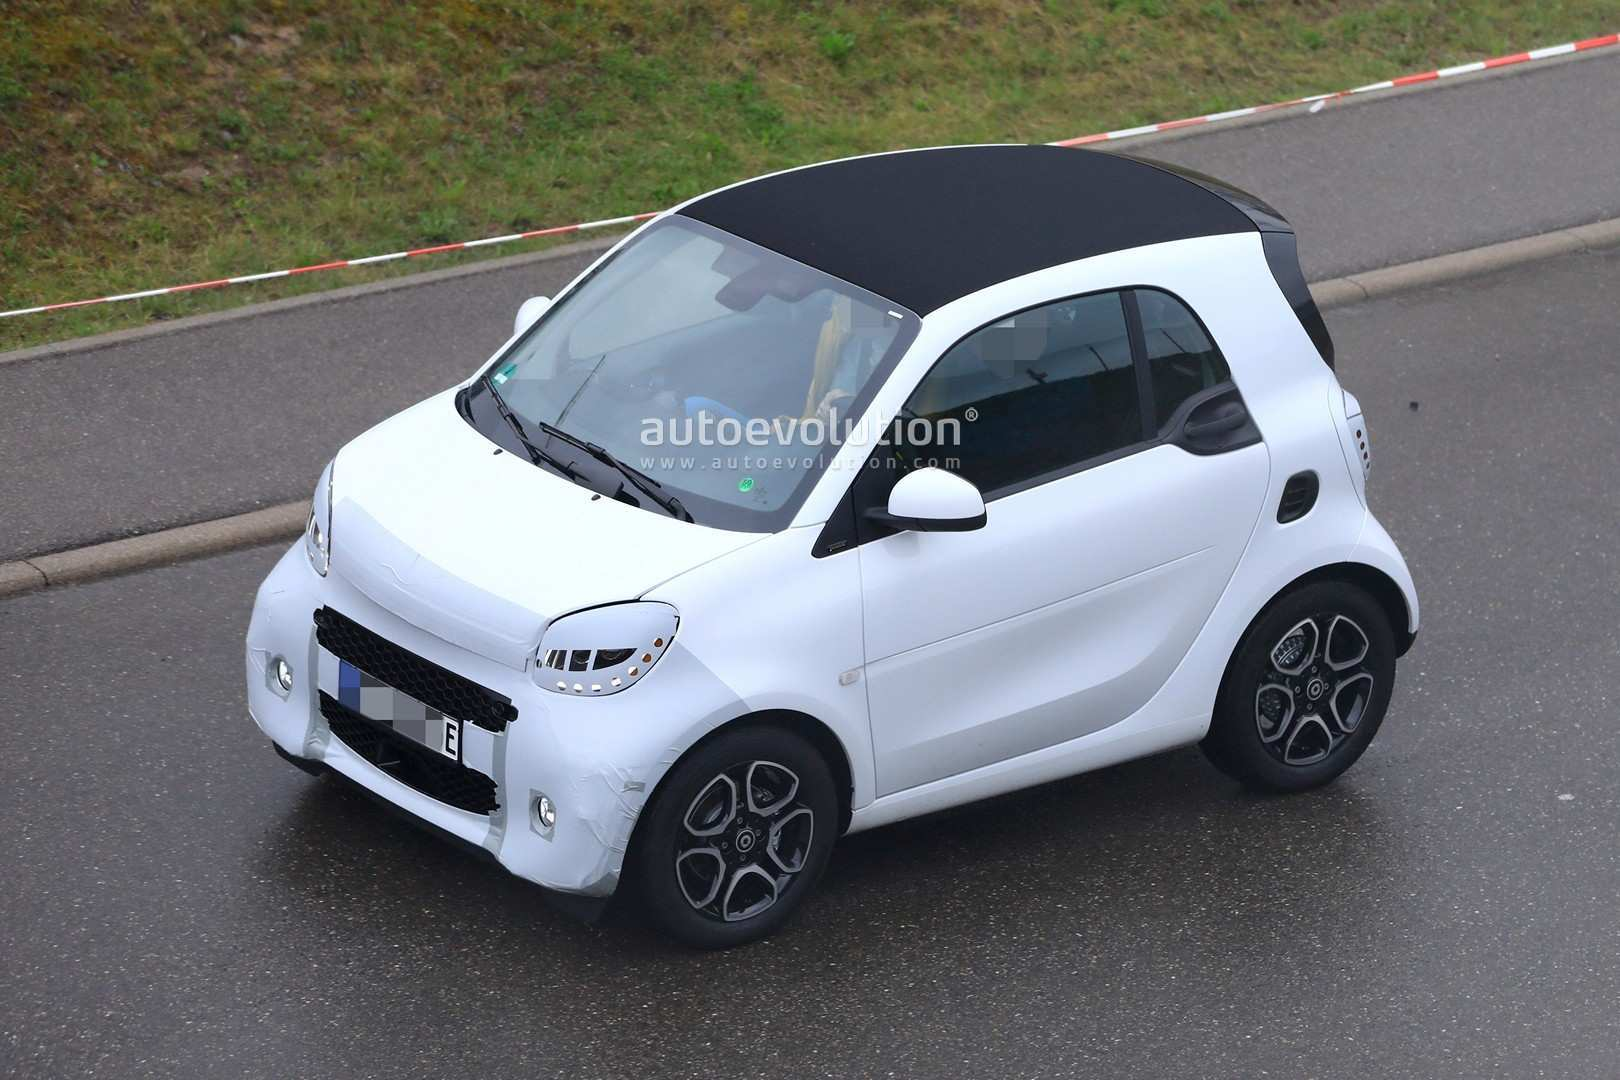 90 The Best 2020 Smart Fortwos Images